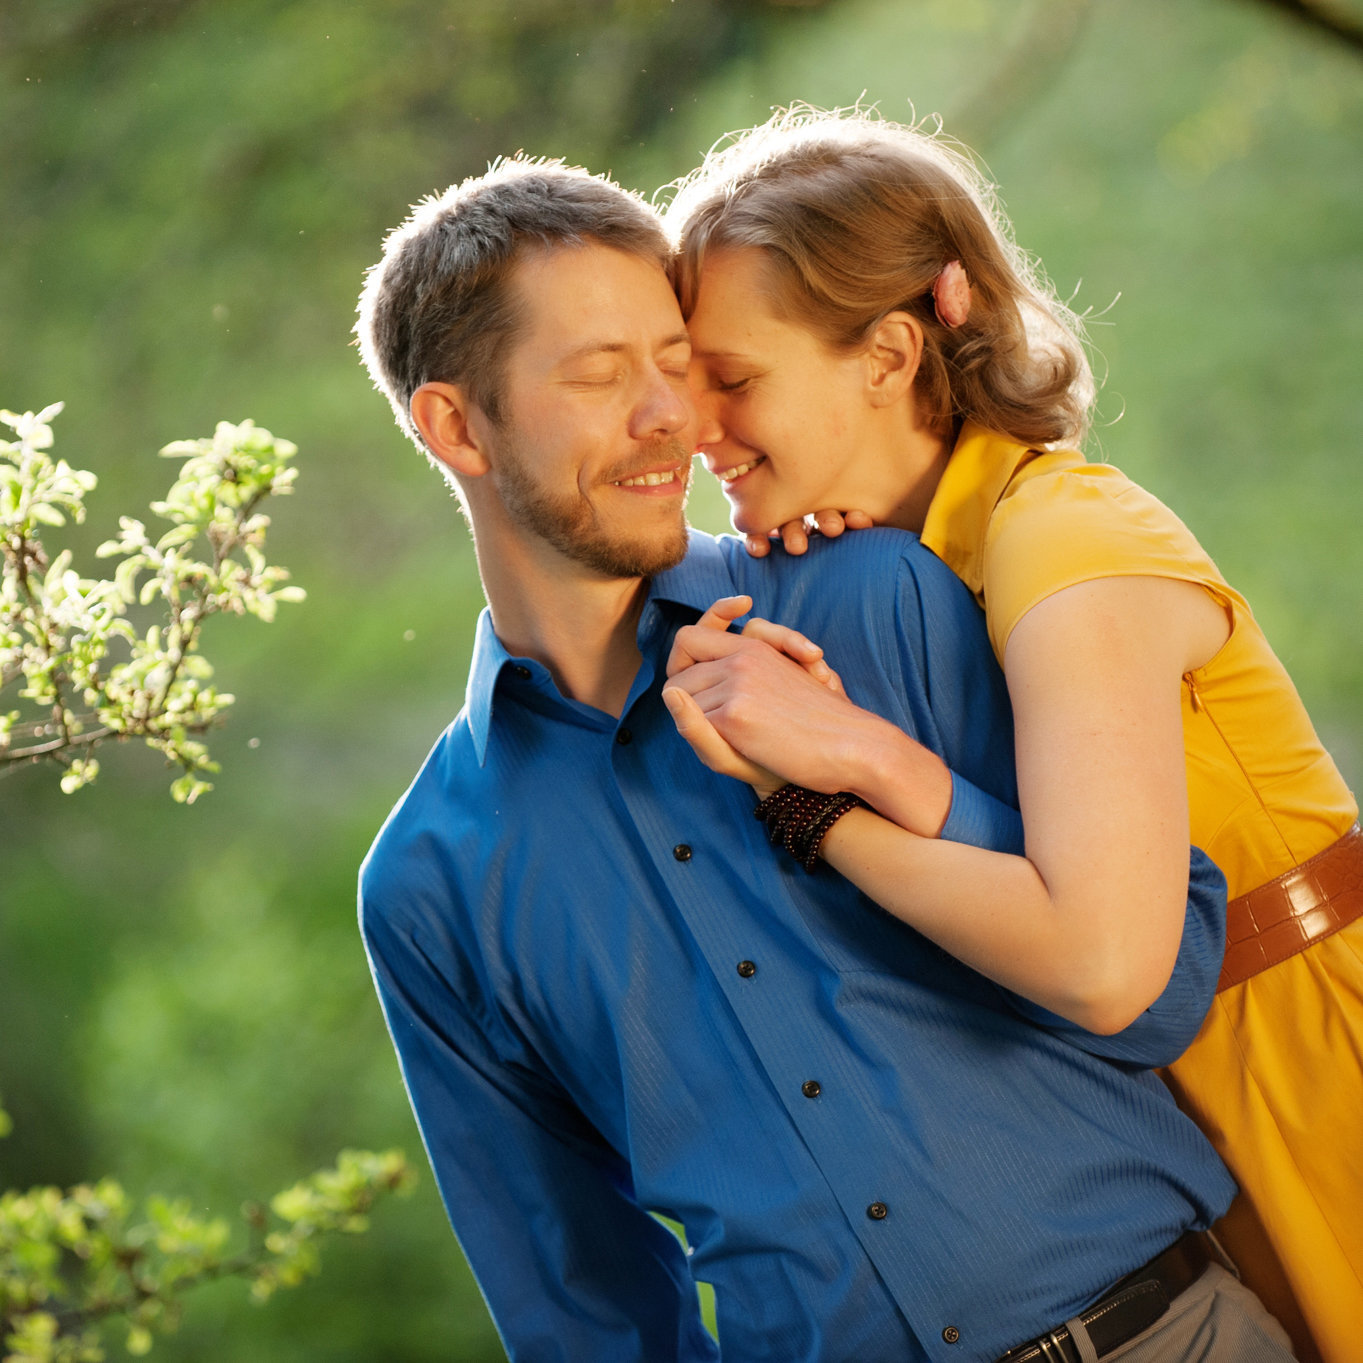 a woman in a yellow dress and a man in a bright blue shirt hug in the sunlight